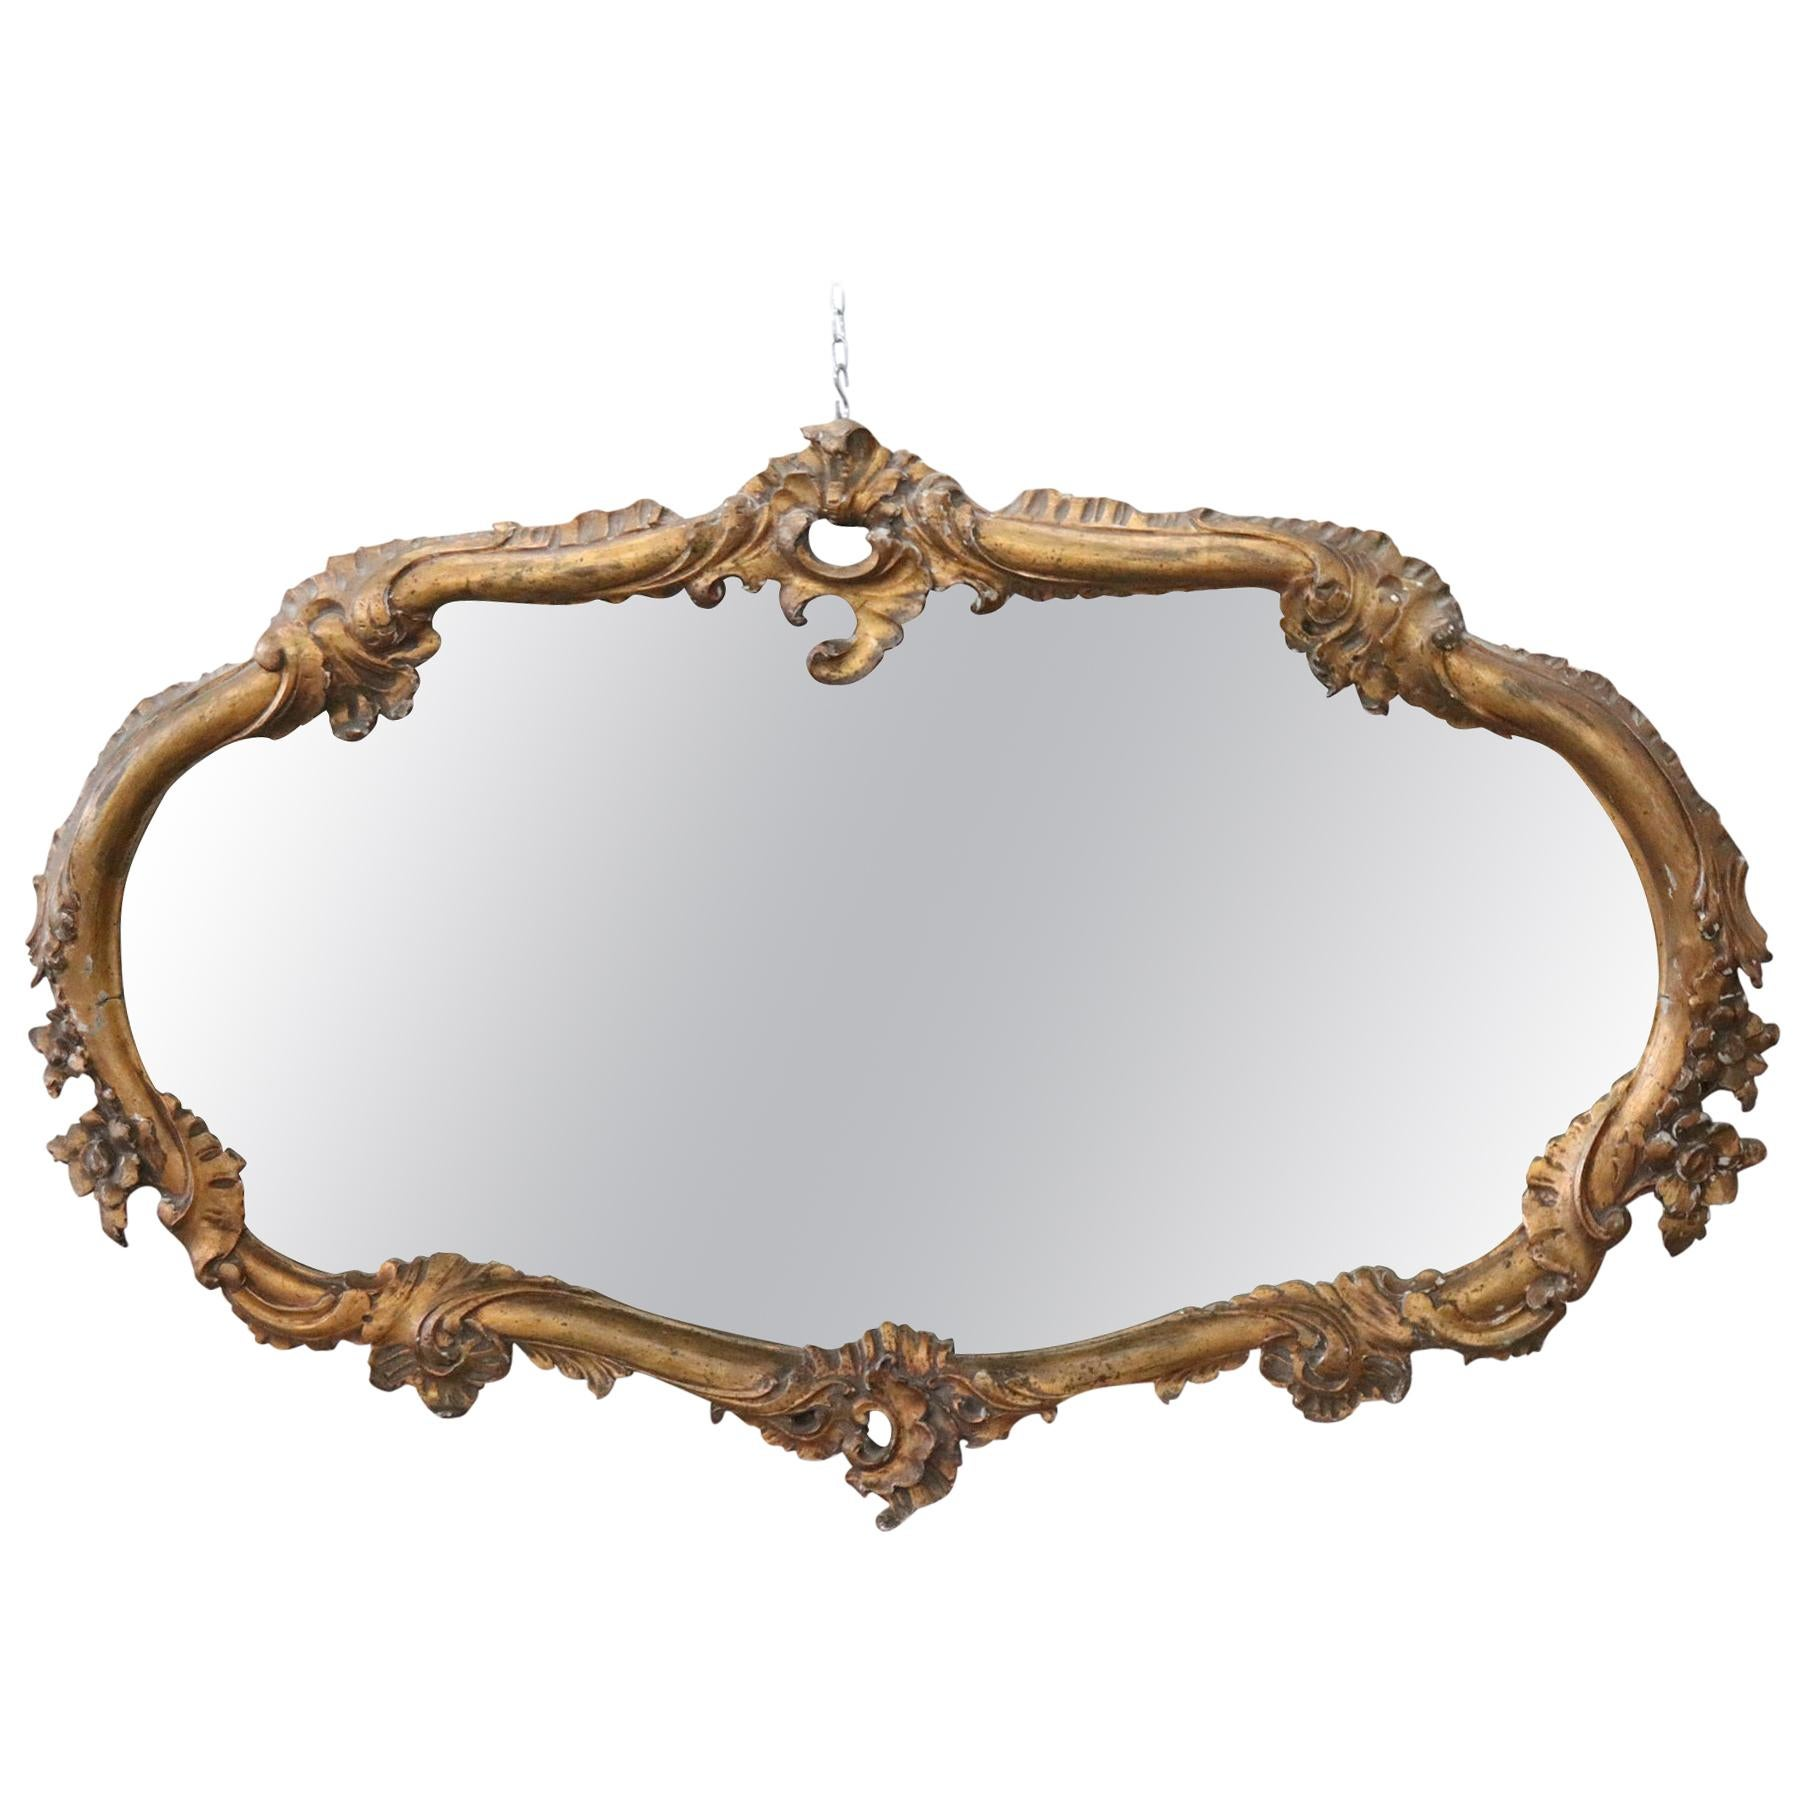 Early 20th Century Italian Carved Gilded Wood Wall Mirror